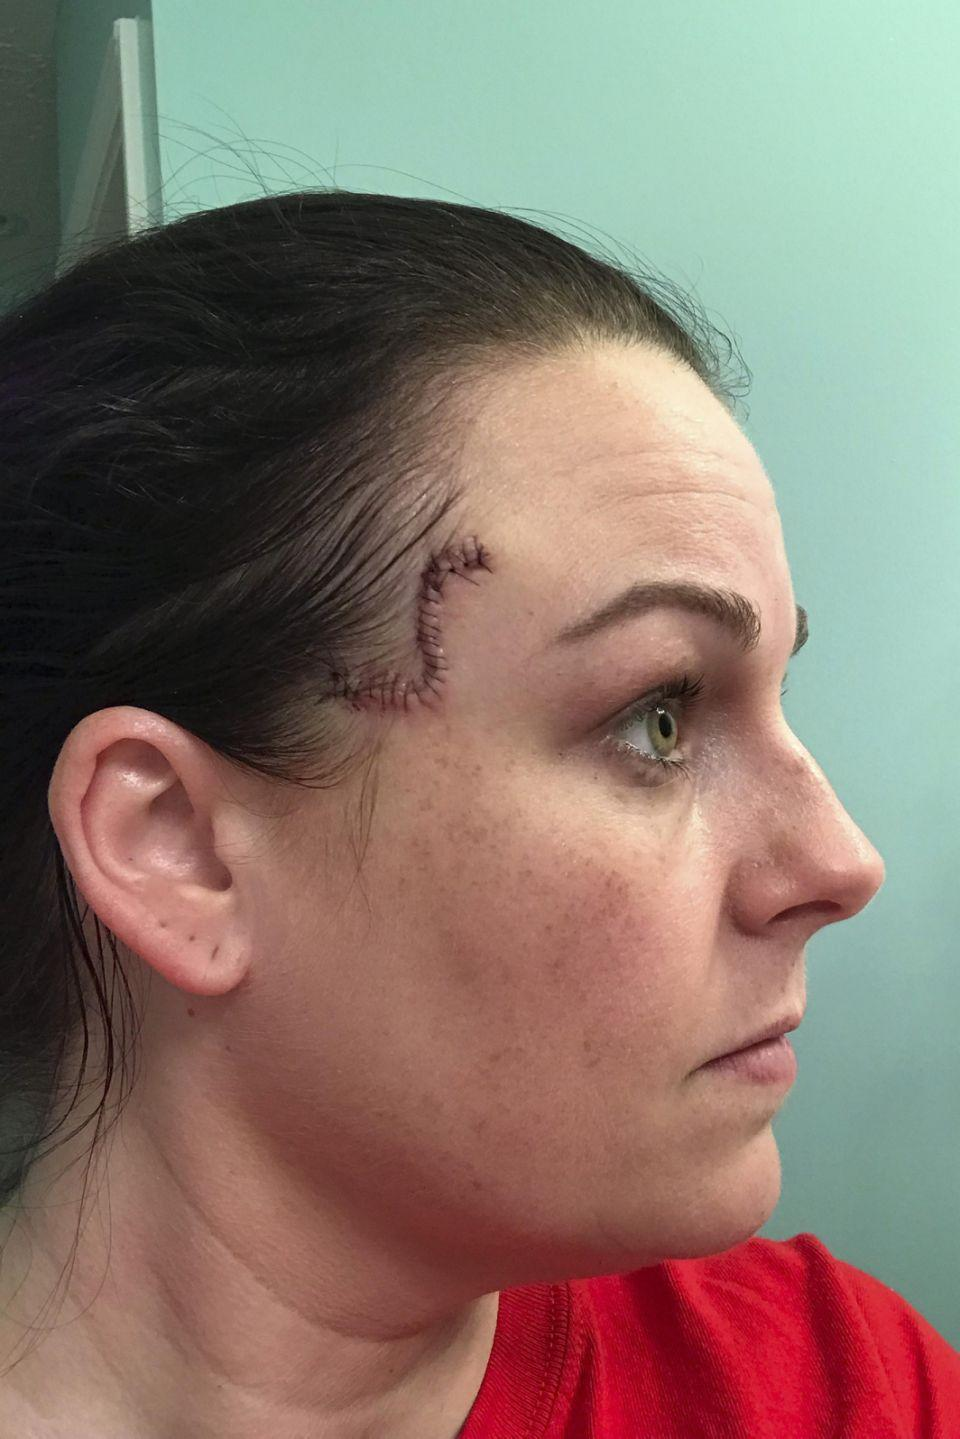 Jones was diagnosed with basal cell carcinoma — a skin cancer that can cause extreme disfigurement if left untreated — two months ago. (Photo: Caters)